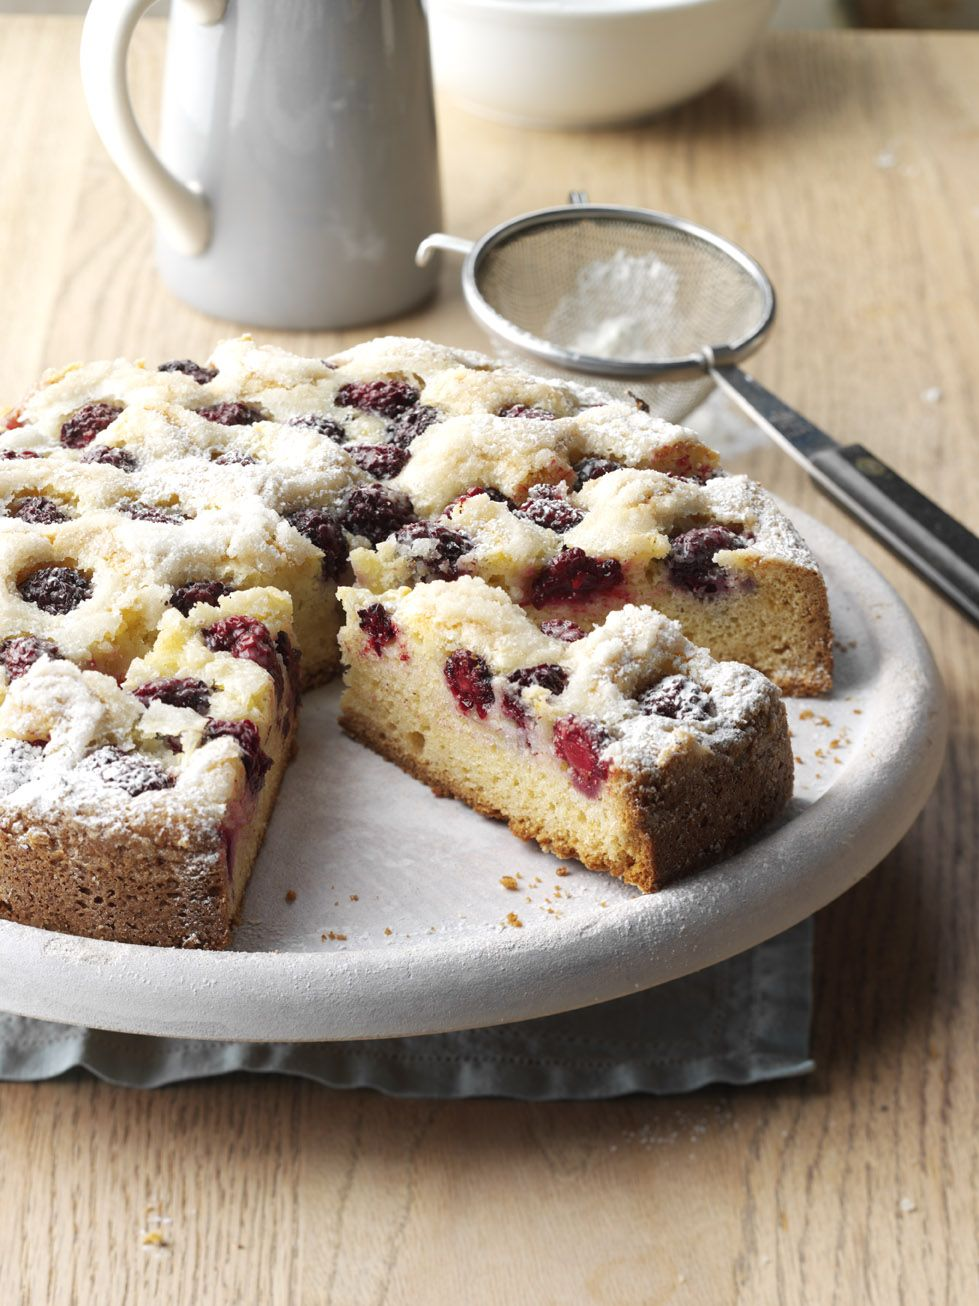 Blackberry-Orange Cake Recipe from Taste of Home   This contest-winning cake recipe will have you coming back again and again for it's decadent flavor.